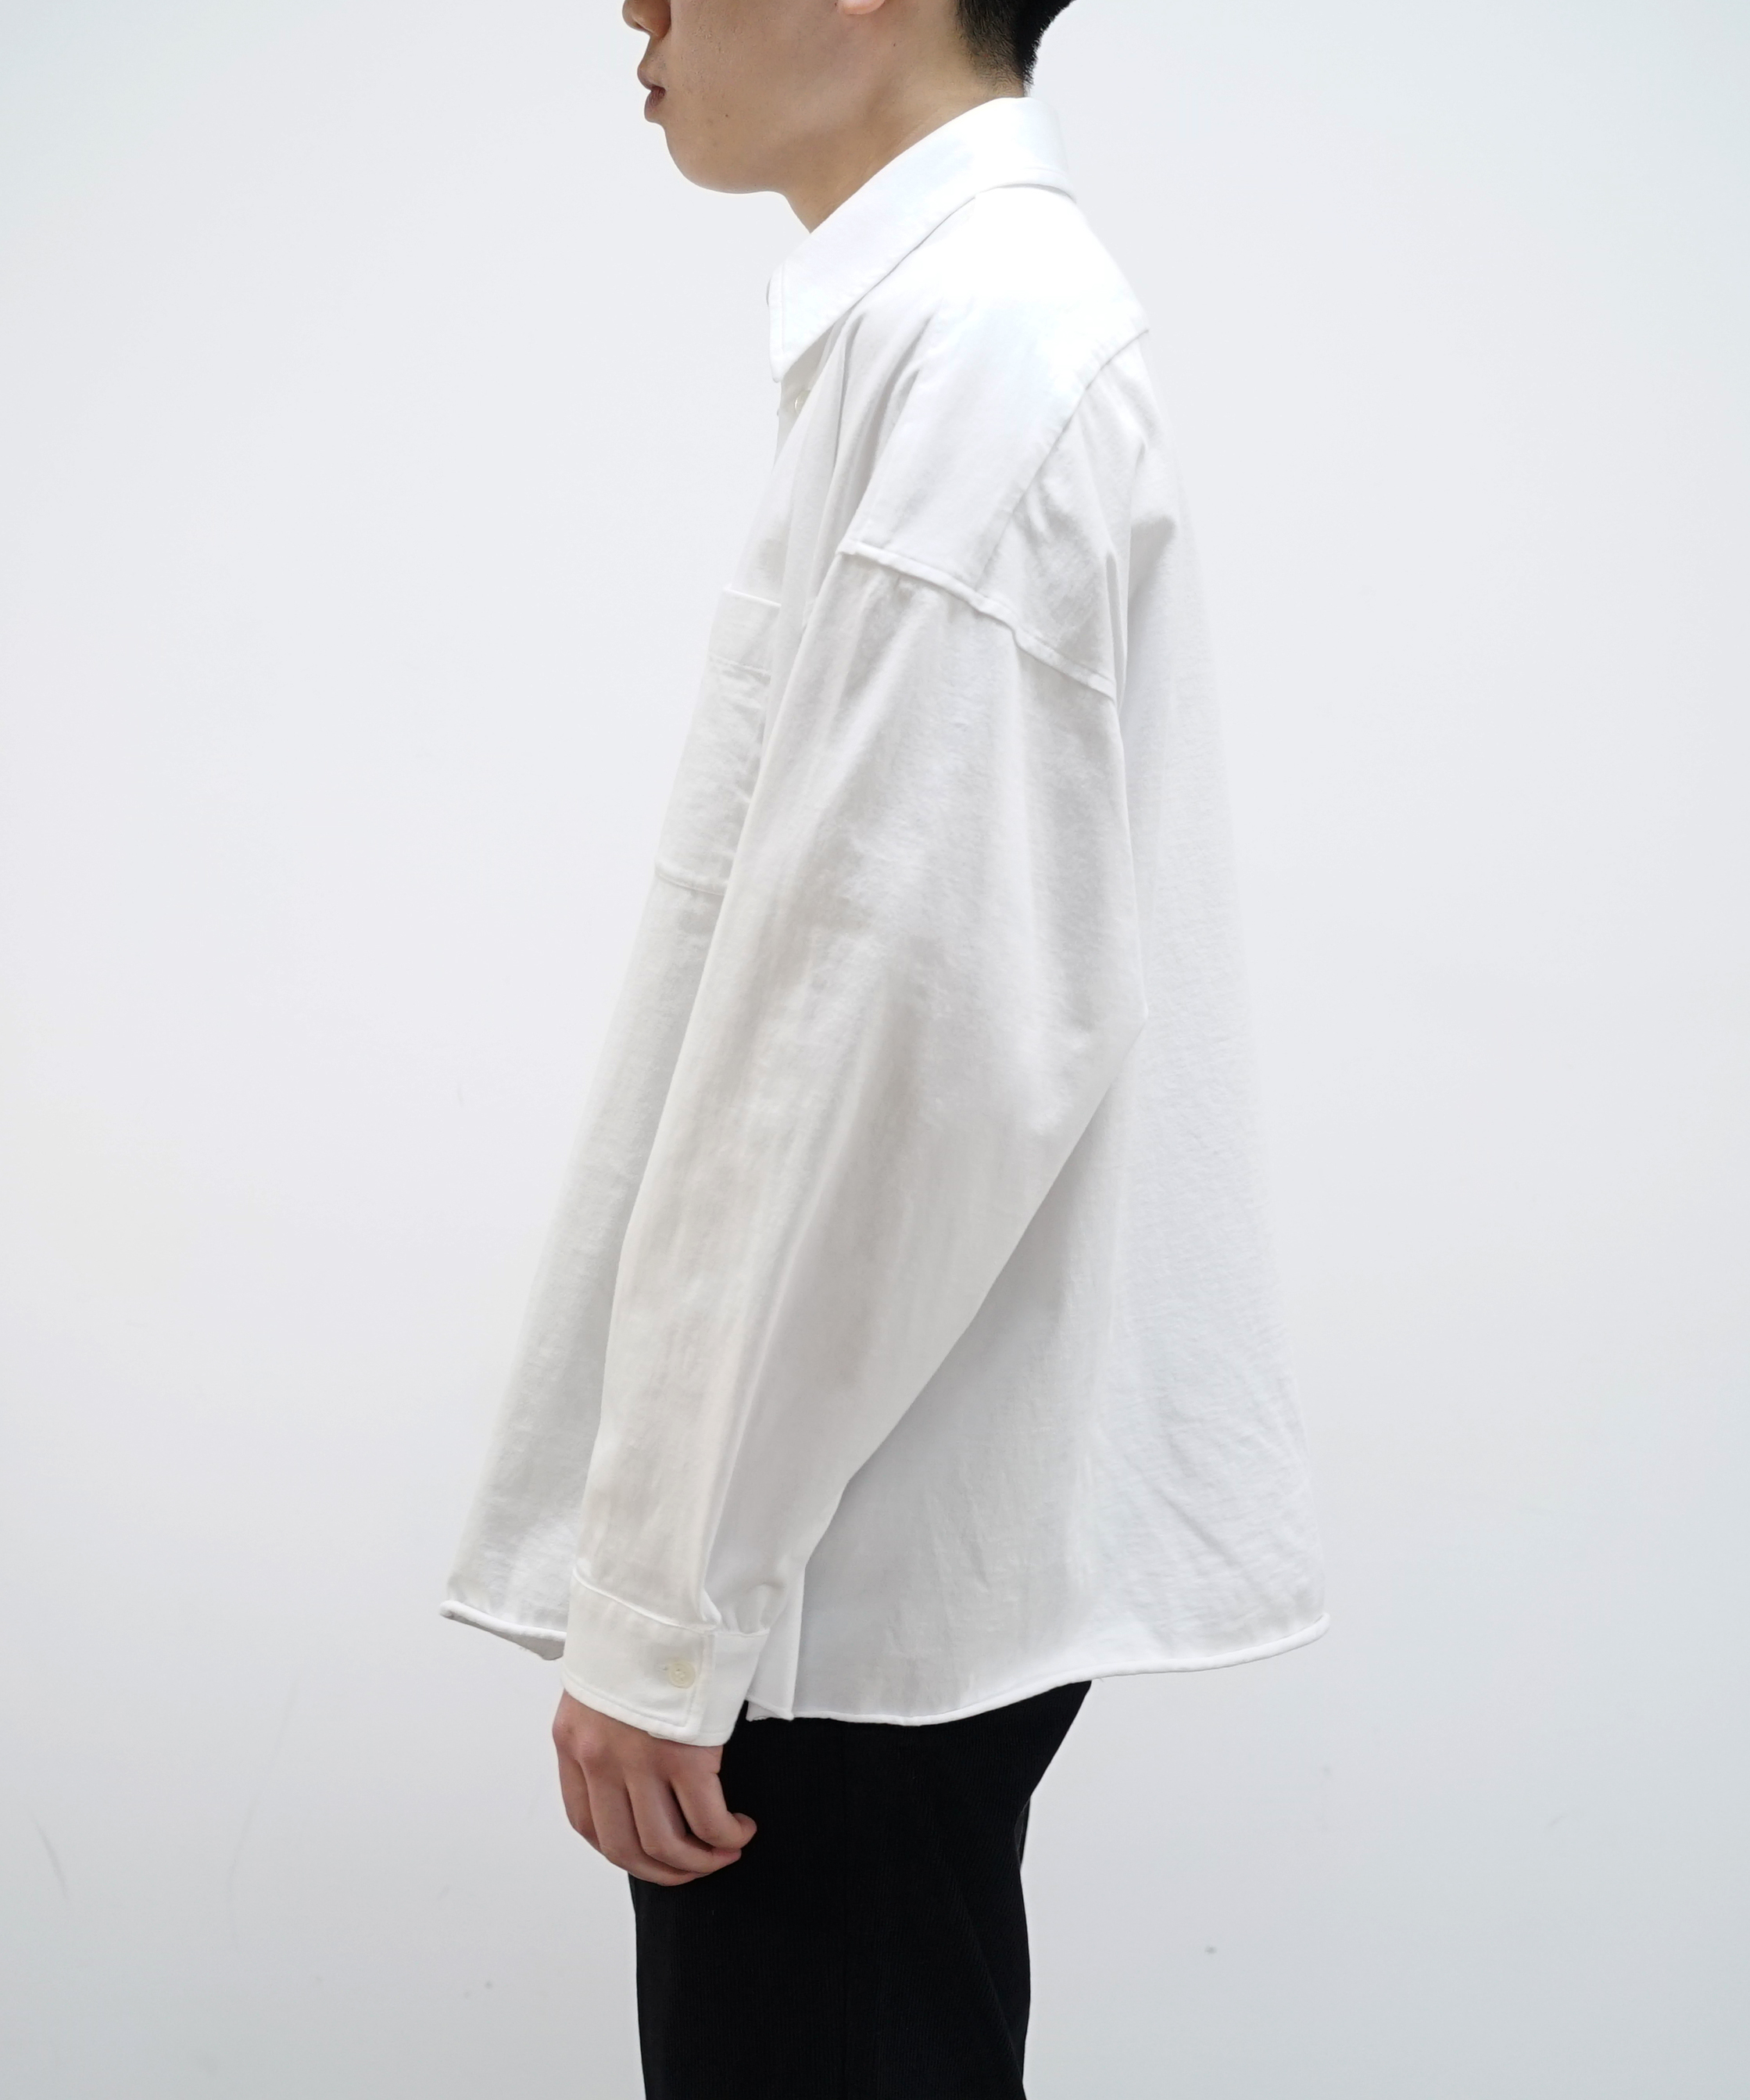 MARNI LIGHTWEIGHT JERSEY SHIRT WHITE